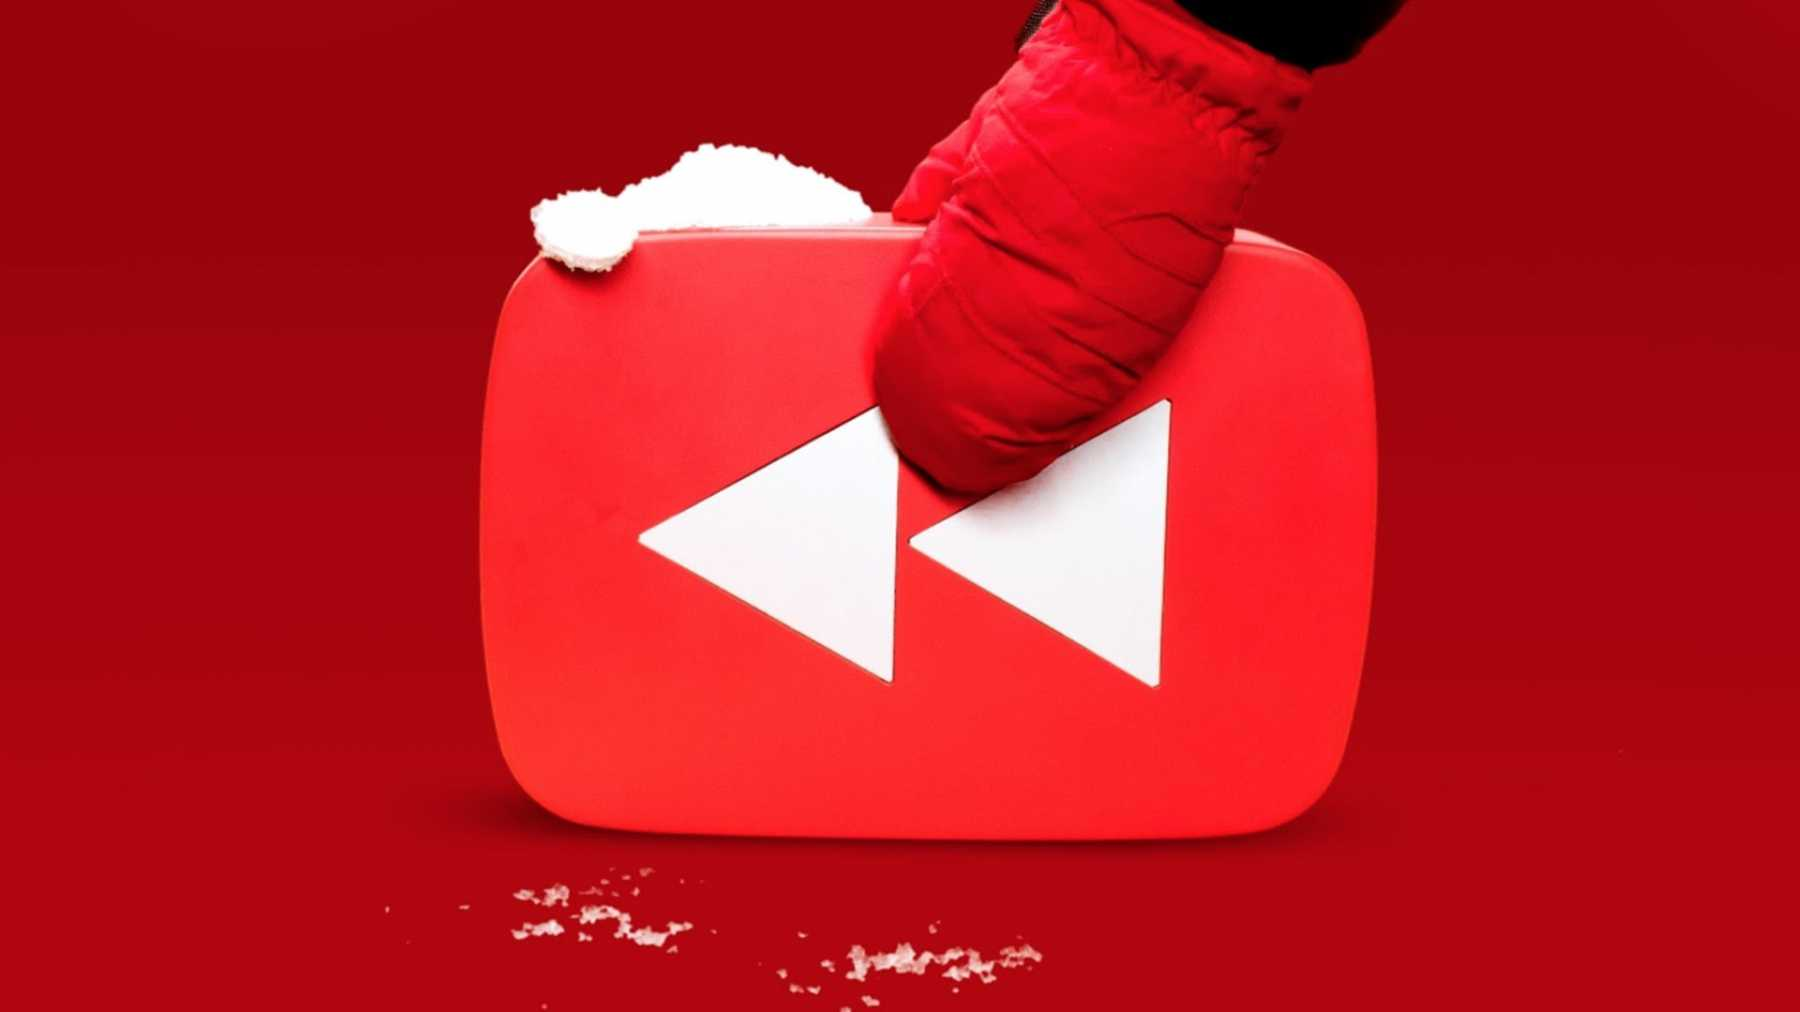 The YouTube Rewind Has All The Viral Hits Of 2015 | YouTube Rewind 2015